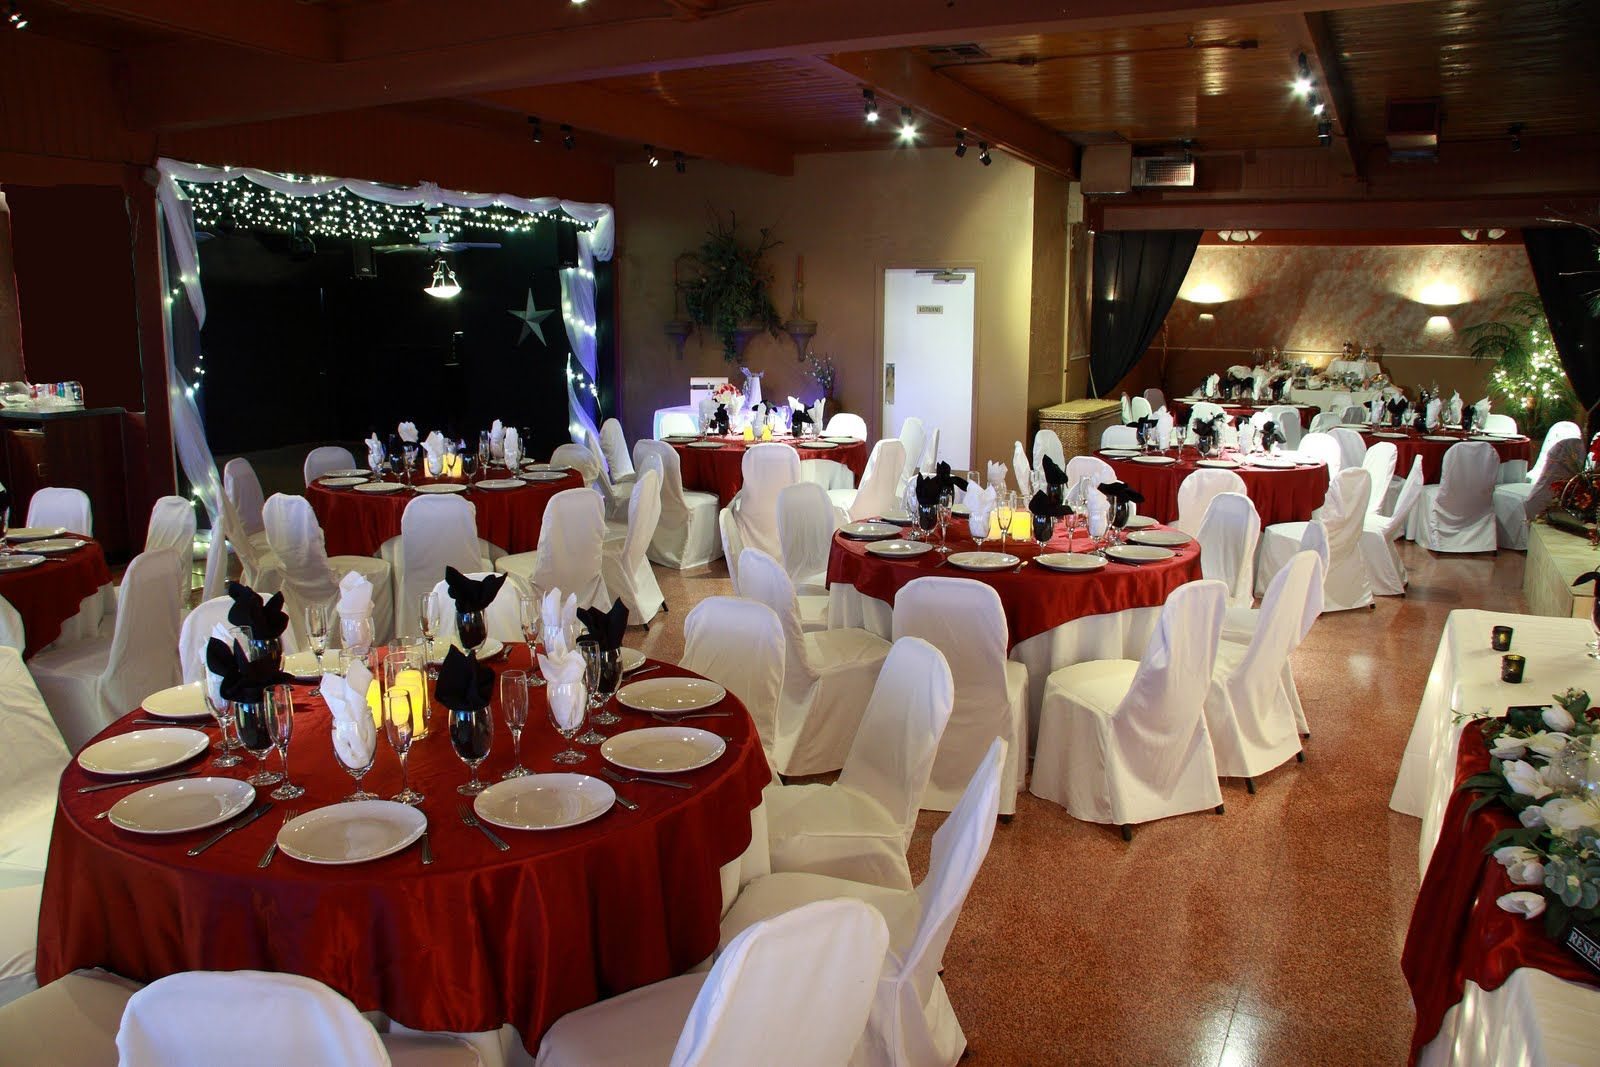 1600x1067 Allure Gardens Wedding Receptions In Las Vegas For